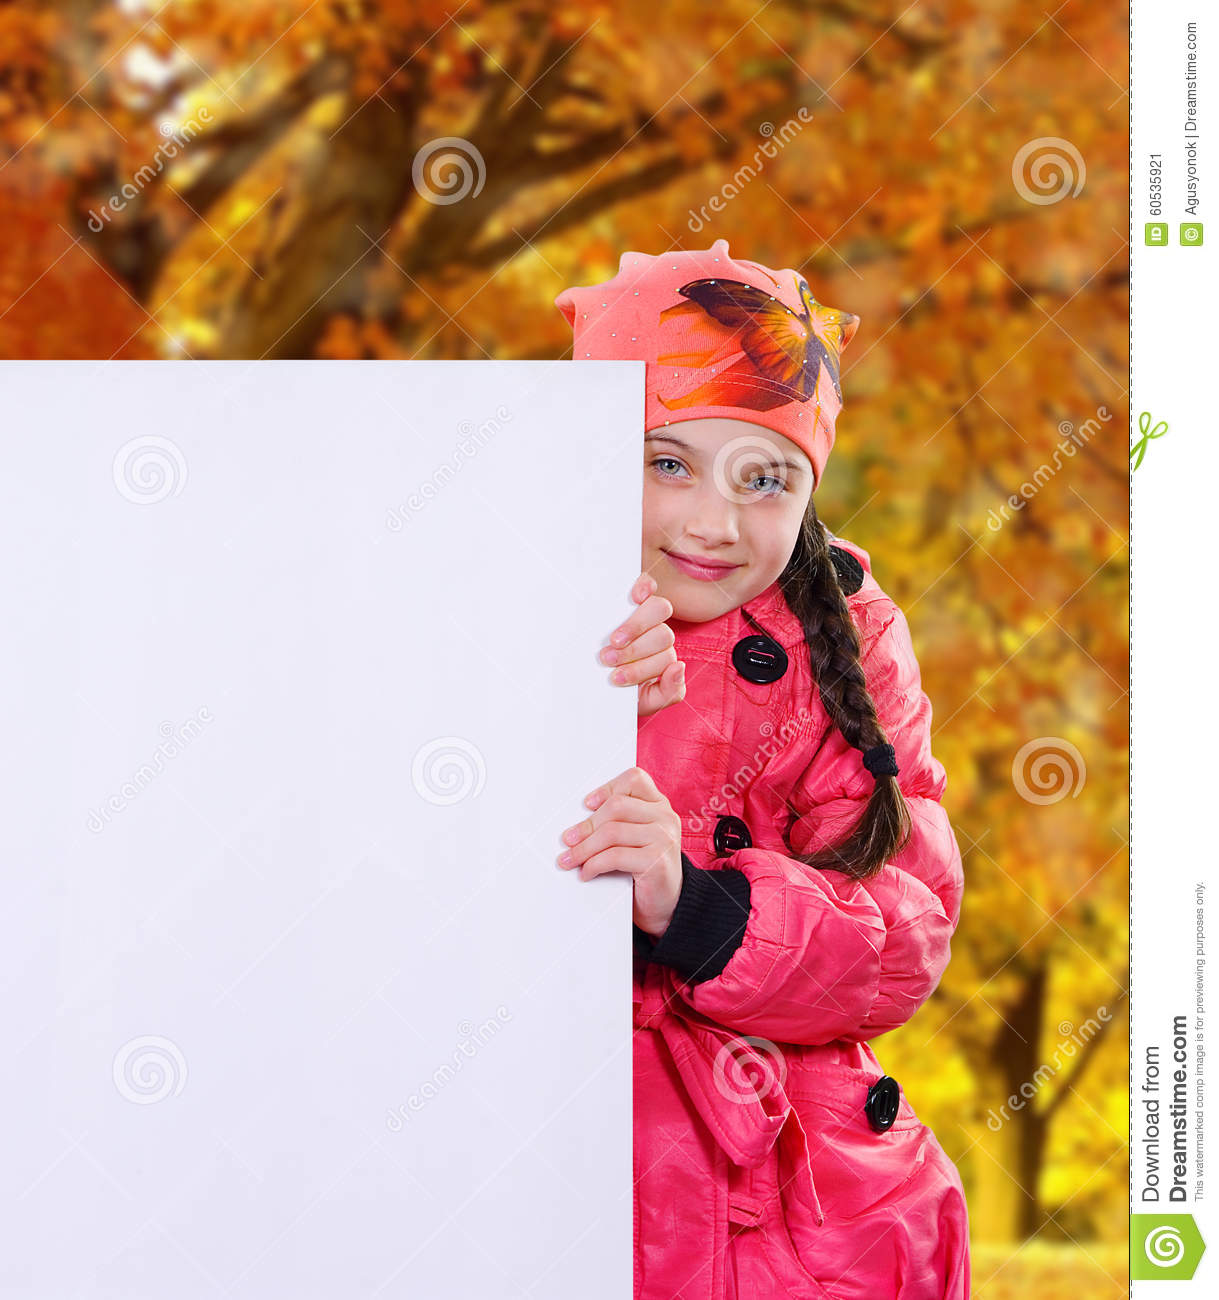 Smiling little girl child in autumn clothes jacket coat and hat holding a blank billboard banner white board.